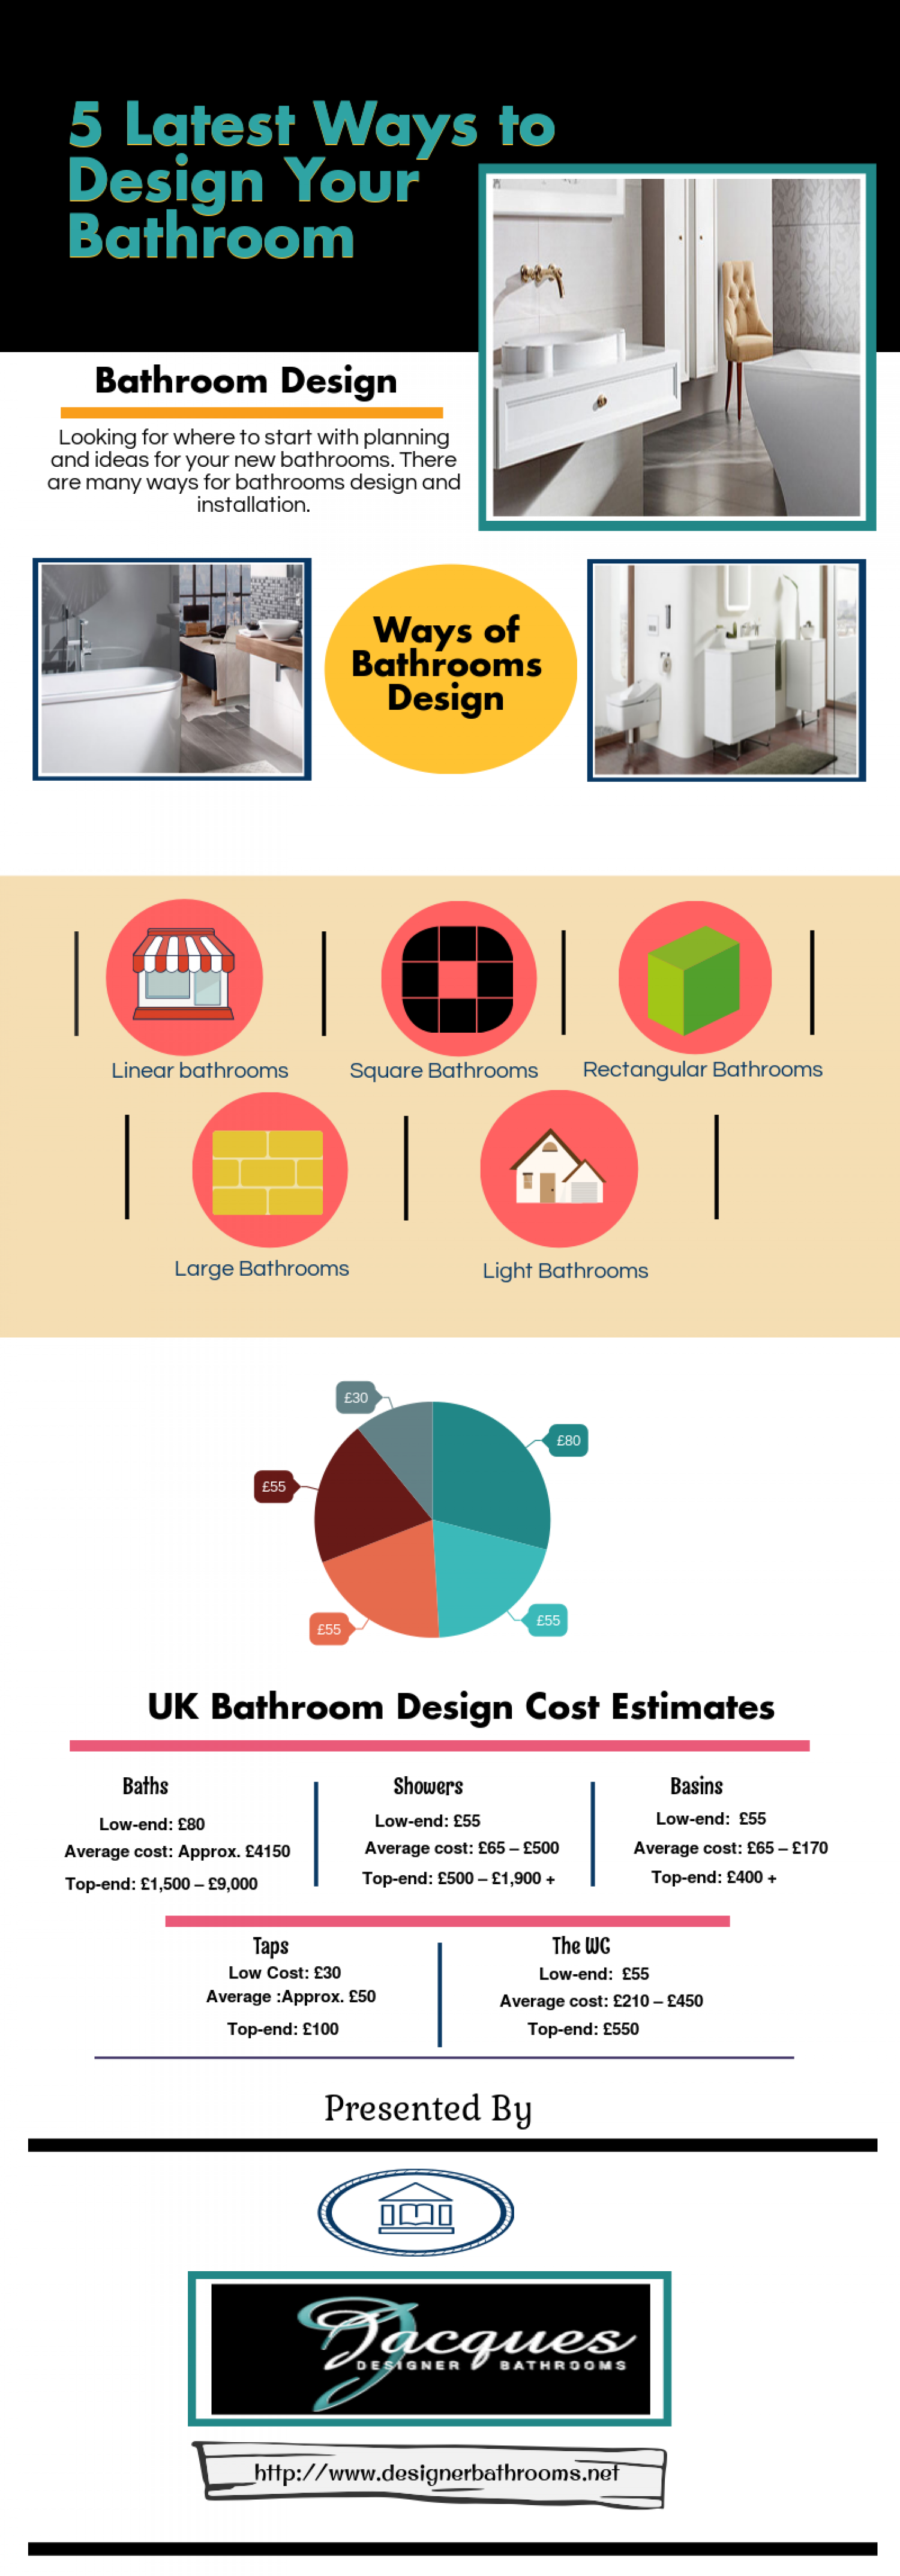 5 Latest Ways To Design Your Bathroom & Cost Estimates Infographic